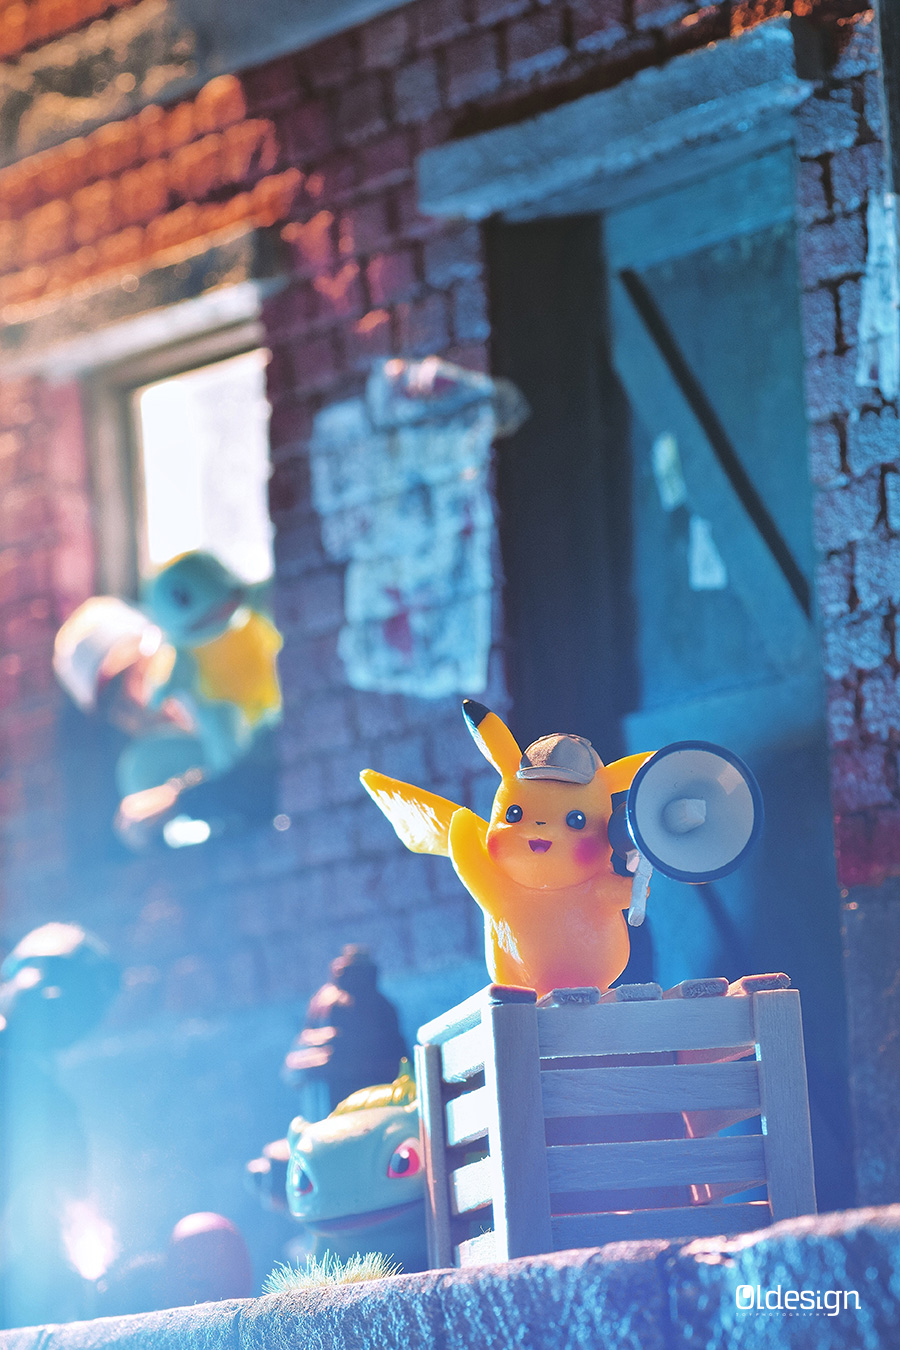 1_detectivepikachu_oldesign